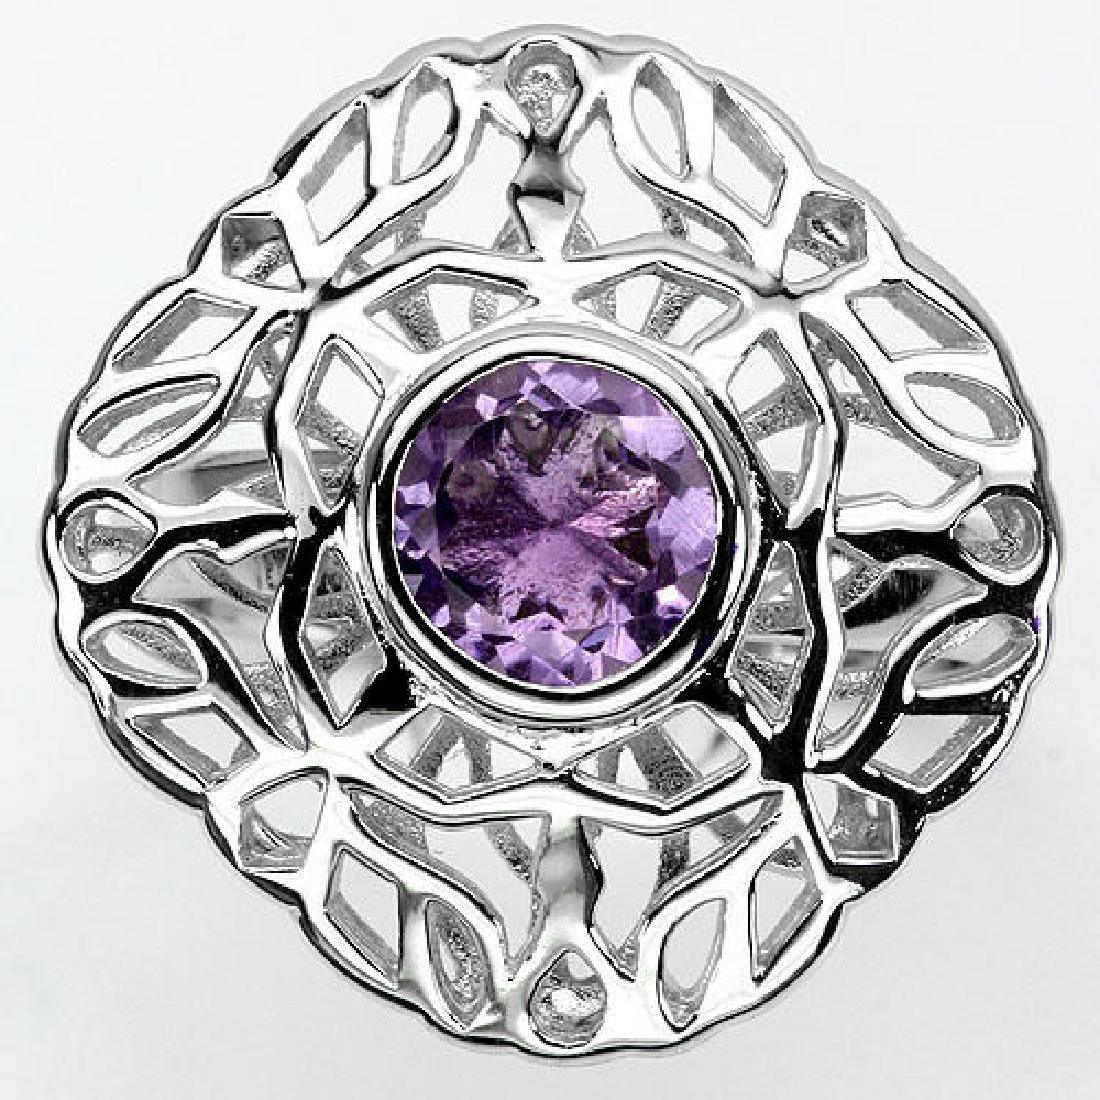 925 Sterling silver Amethyst Ring Size N.5 (US 7)